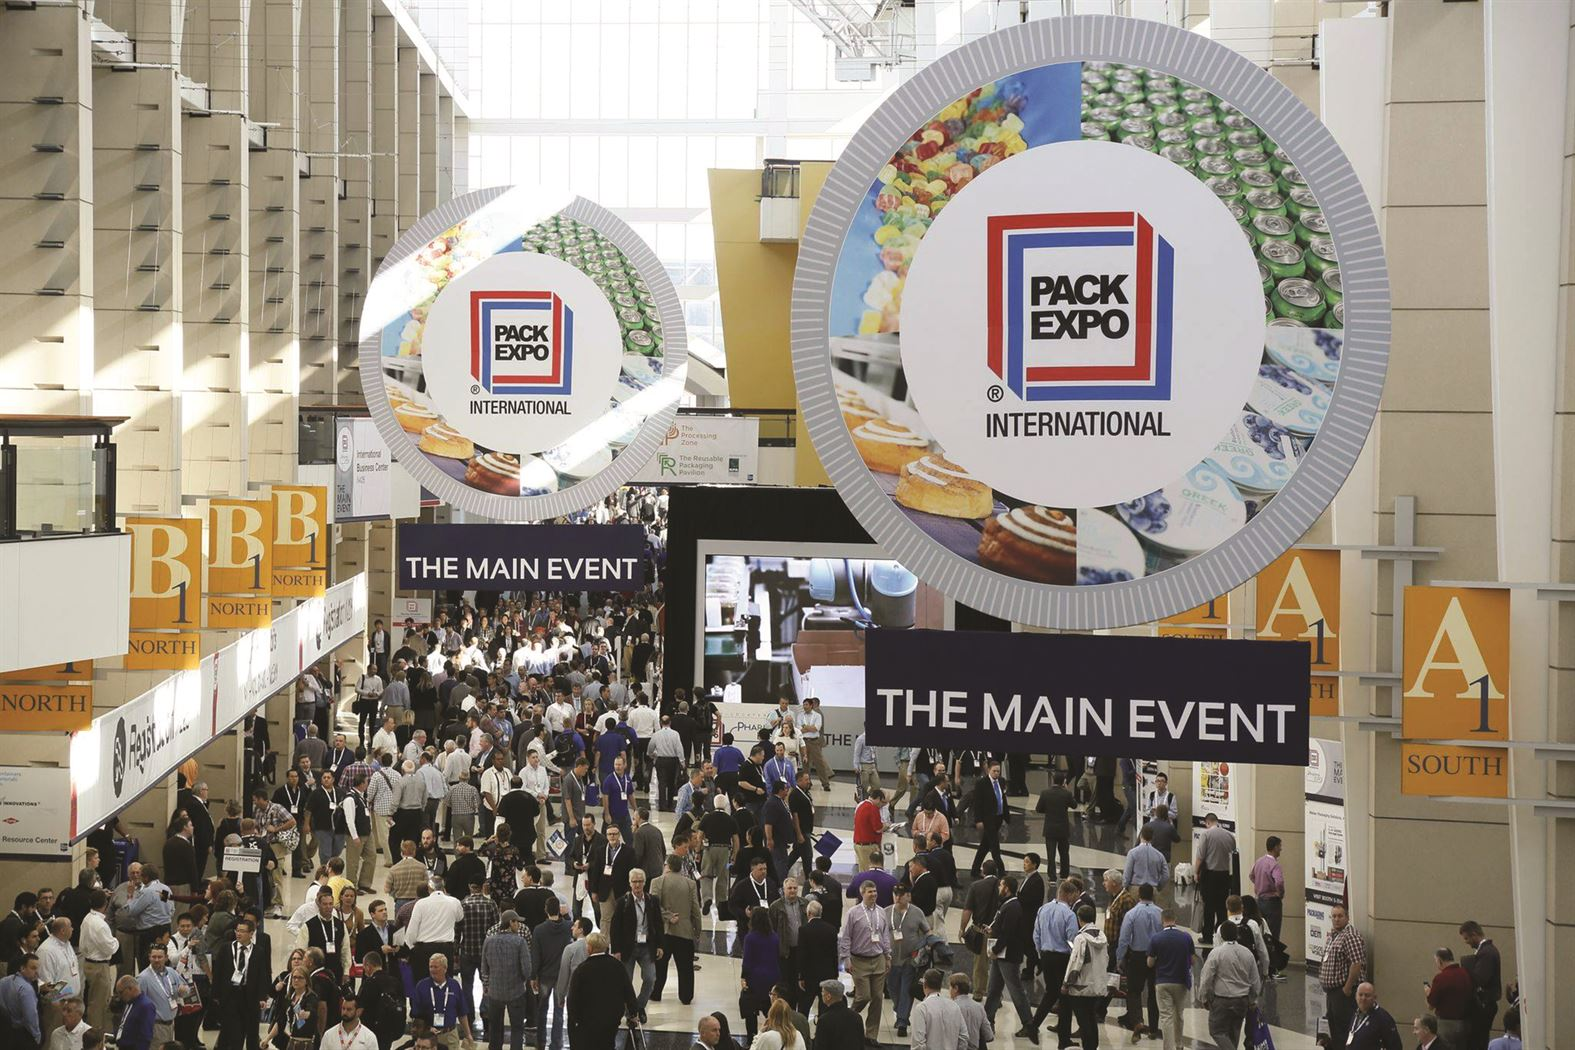 Pro Expo Communication Stands Events : Convention data services connecting people driving events